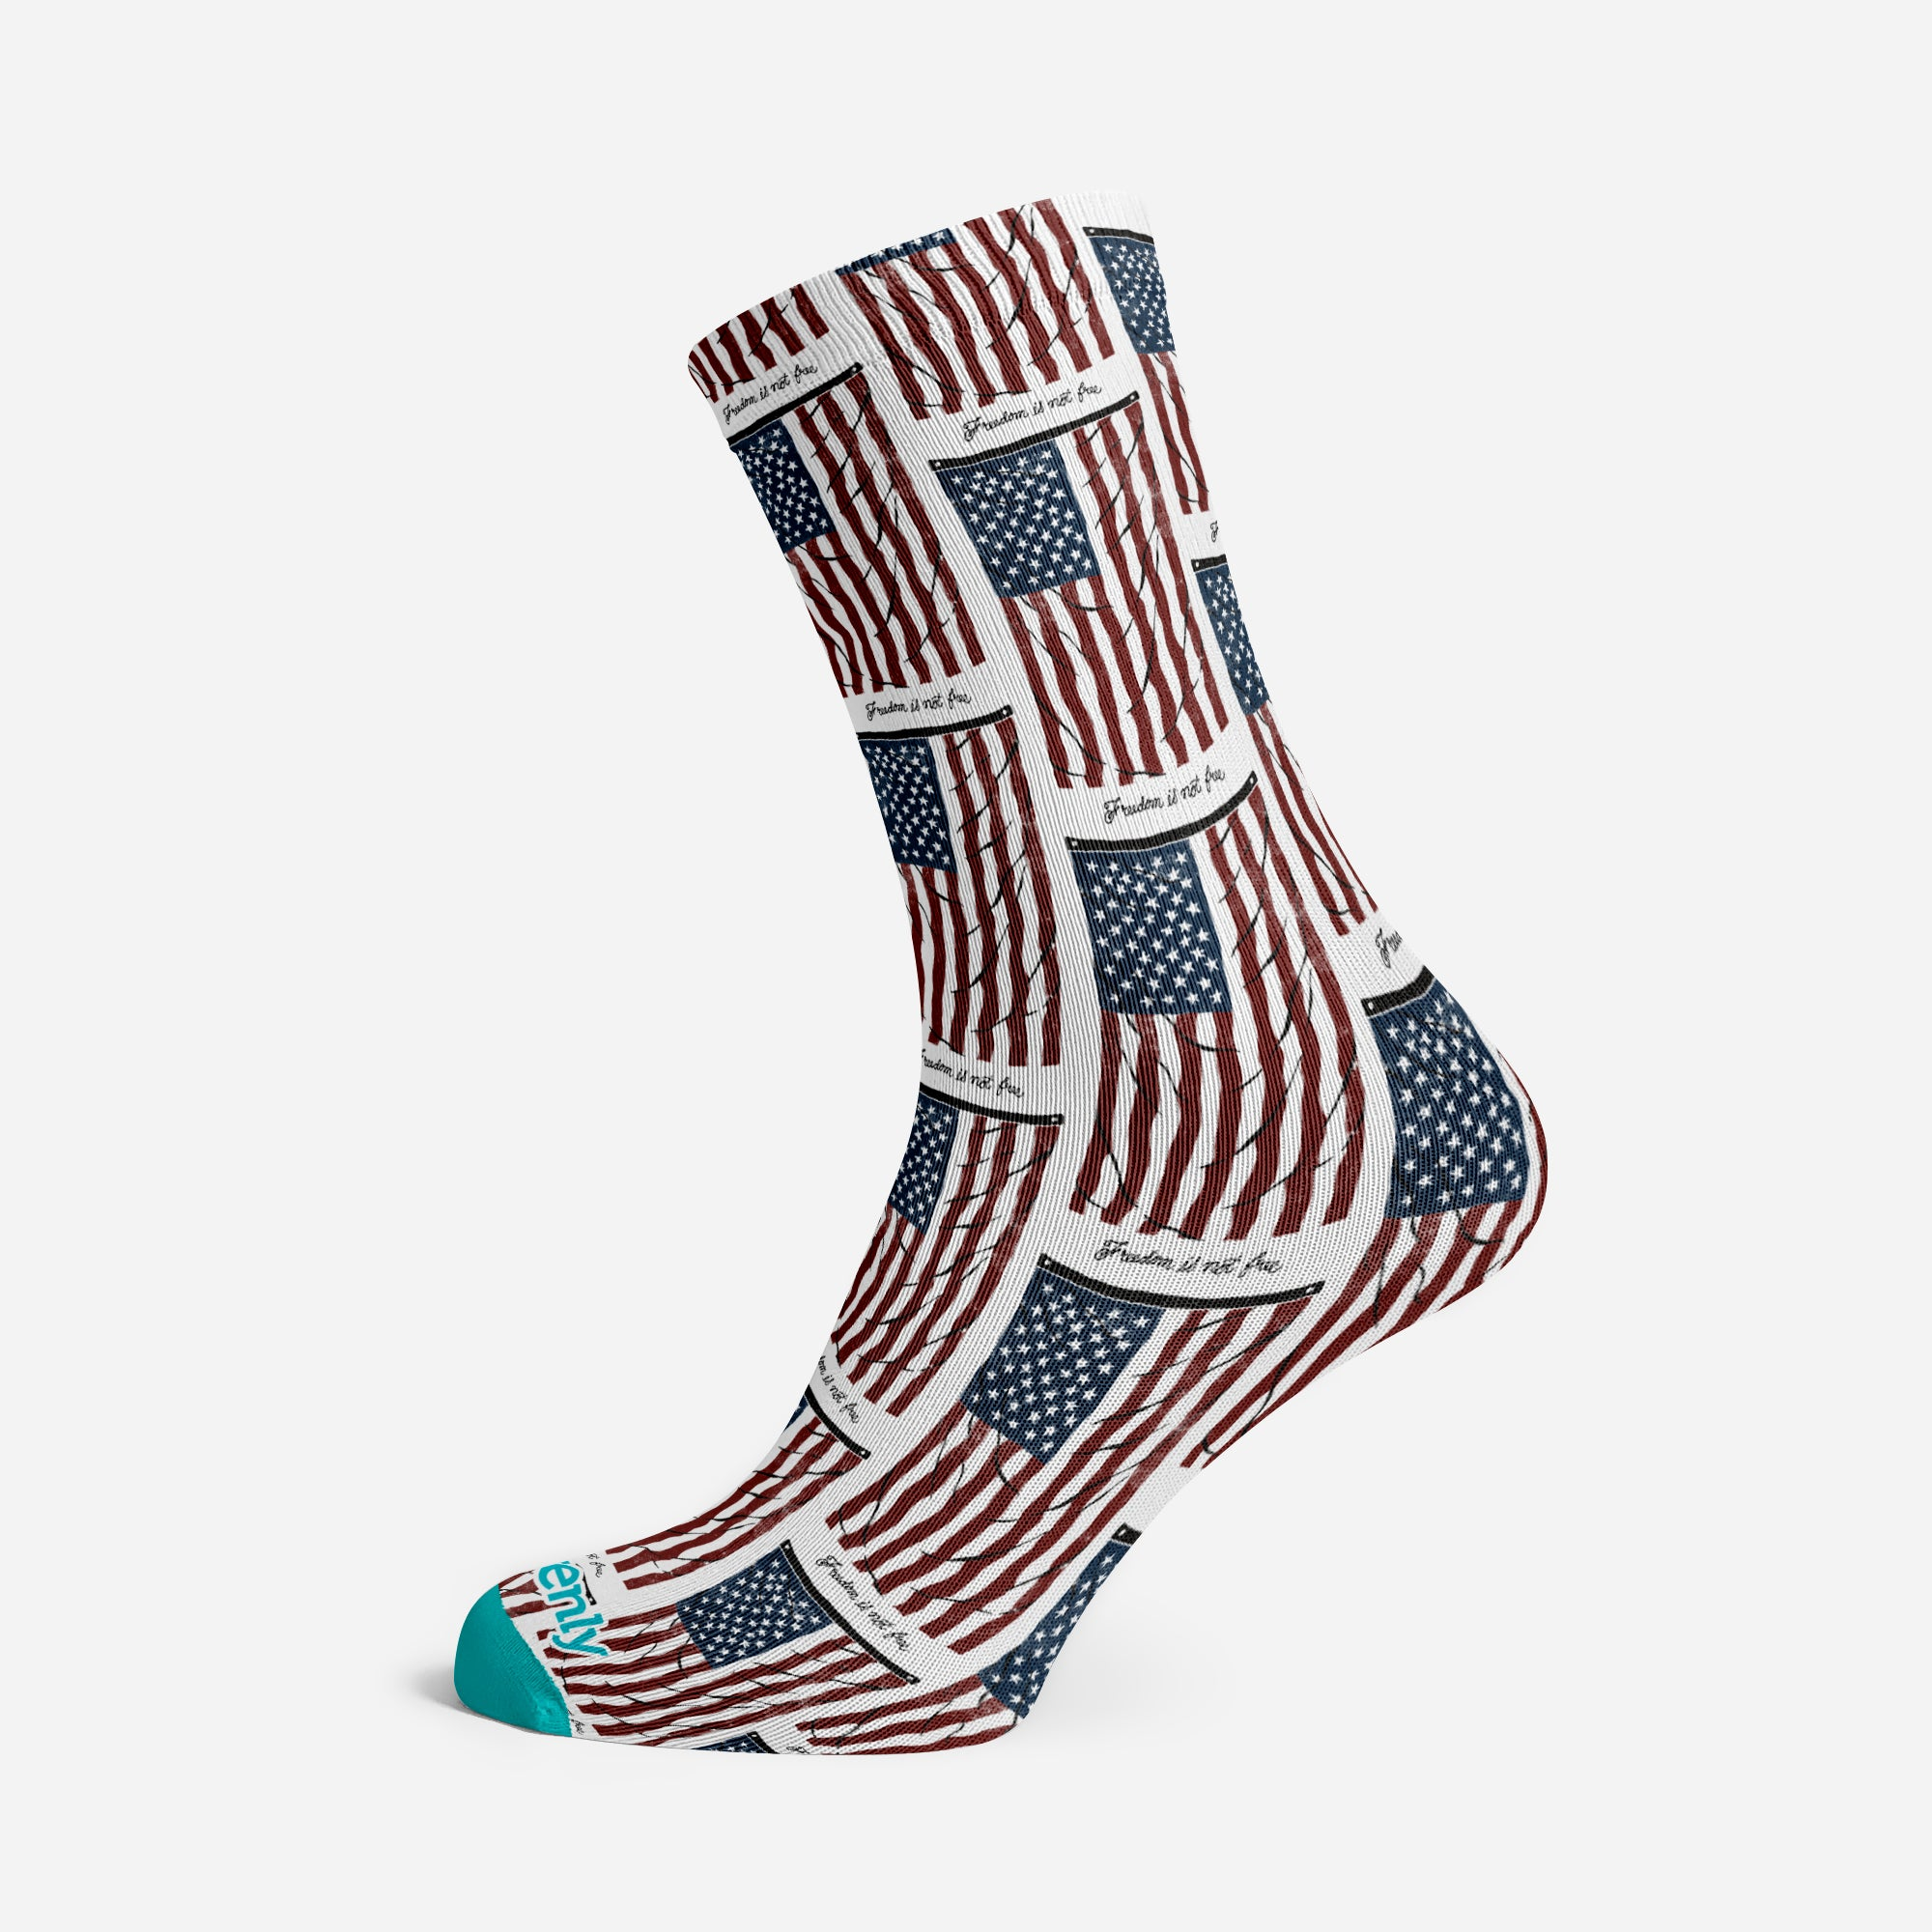 VINTAGE AMERICAN FLAG PREMIUM ADULTS SOCKS